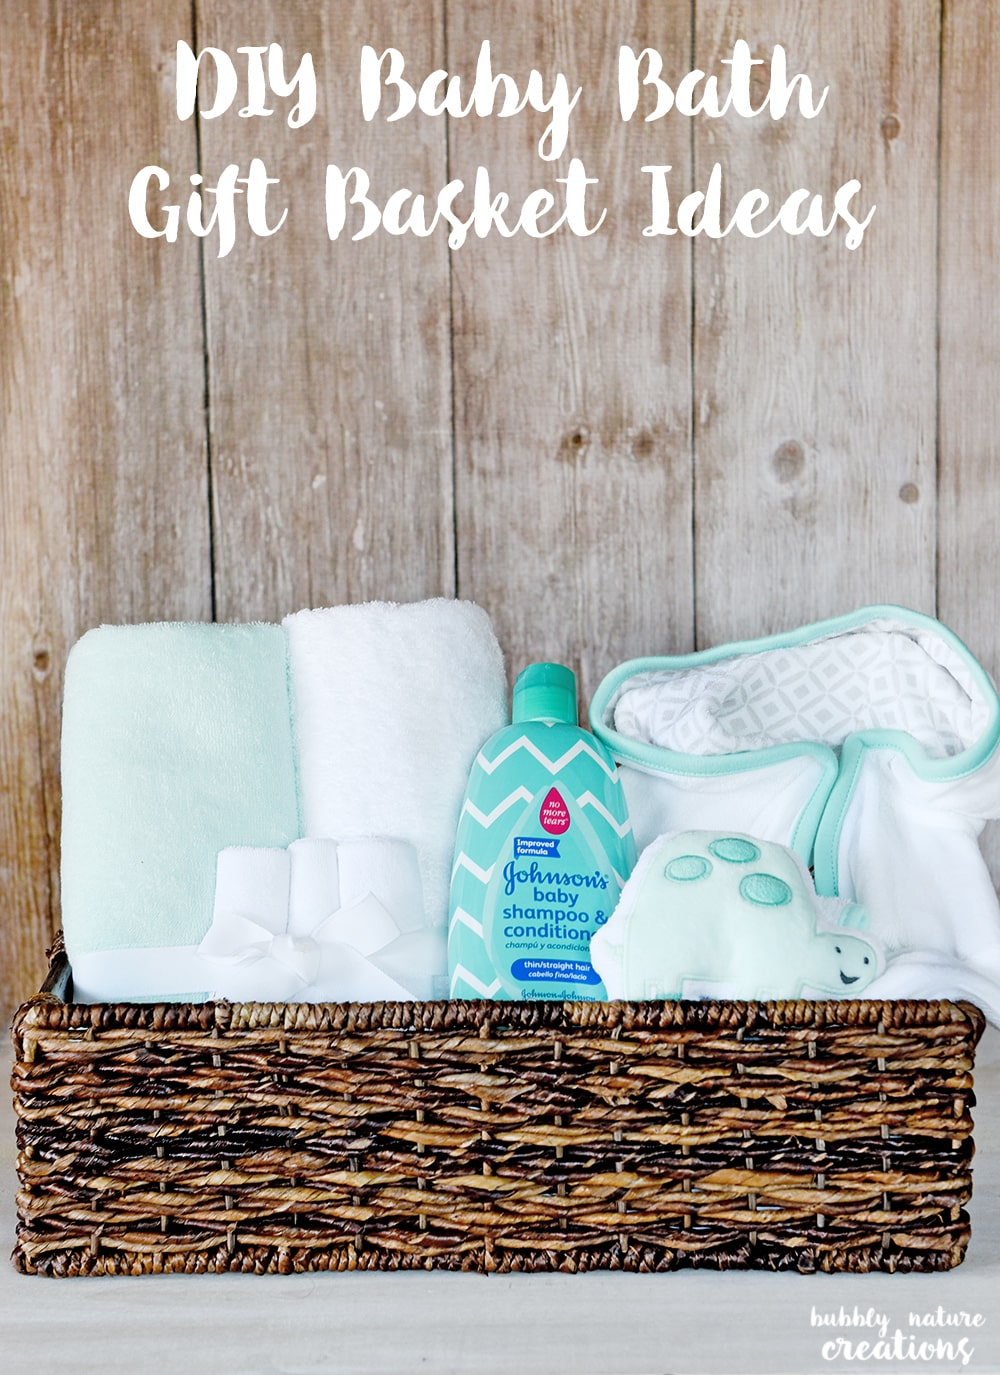 Baby gift basket ideas diy 4k wallpapers johnsonspartners diy baby bath gift basket ideas easily create your own baby shower gift baskets solutioingenieria Images